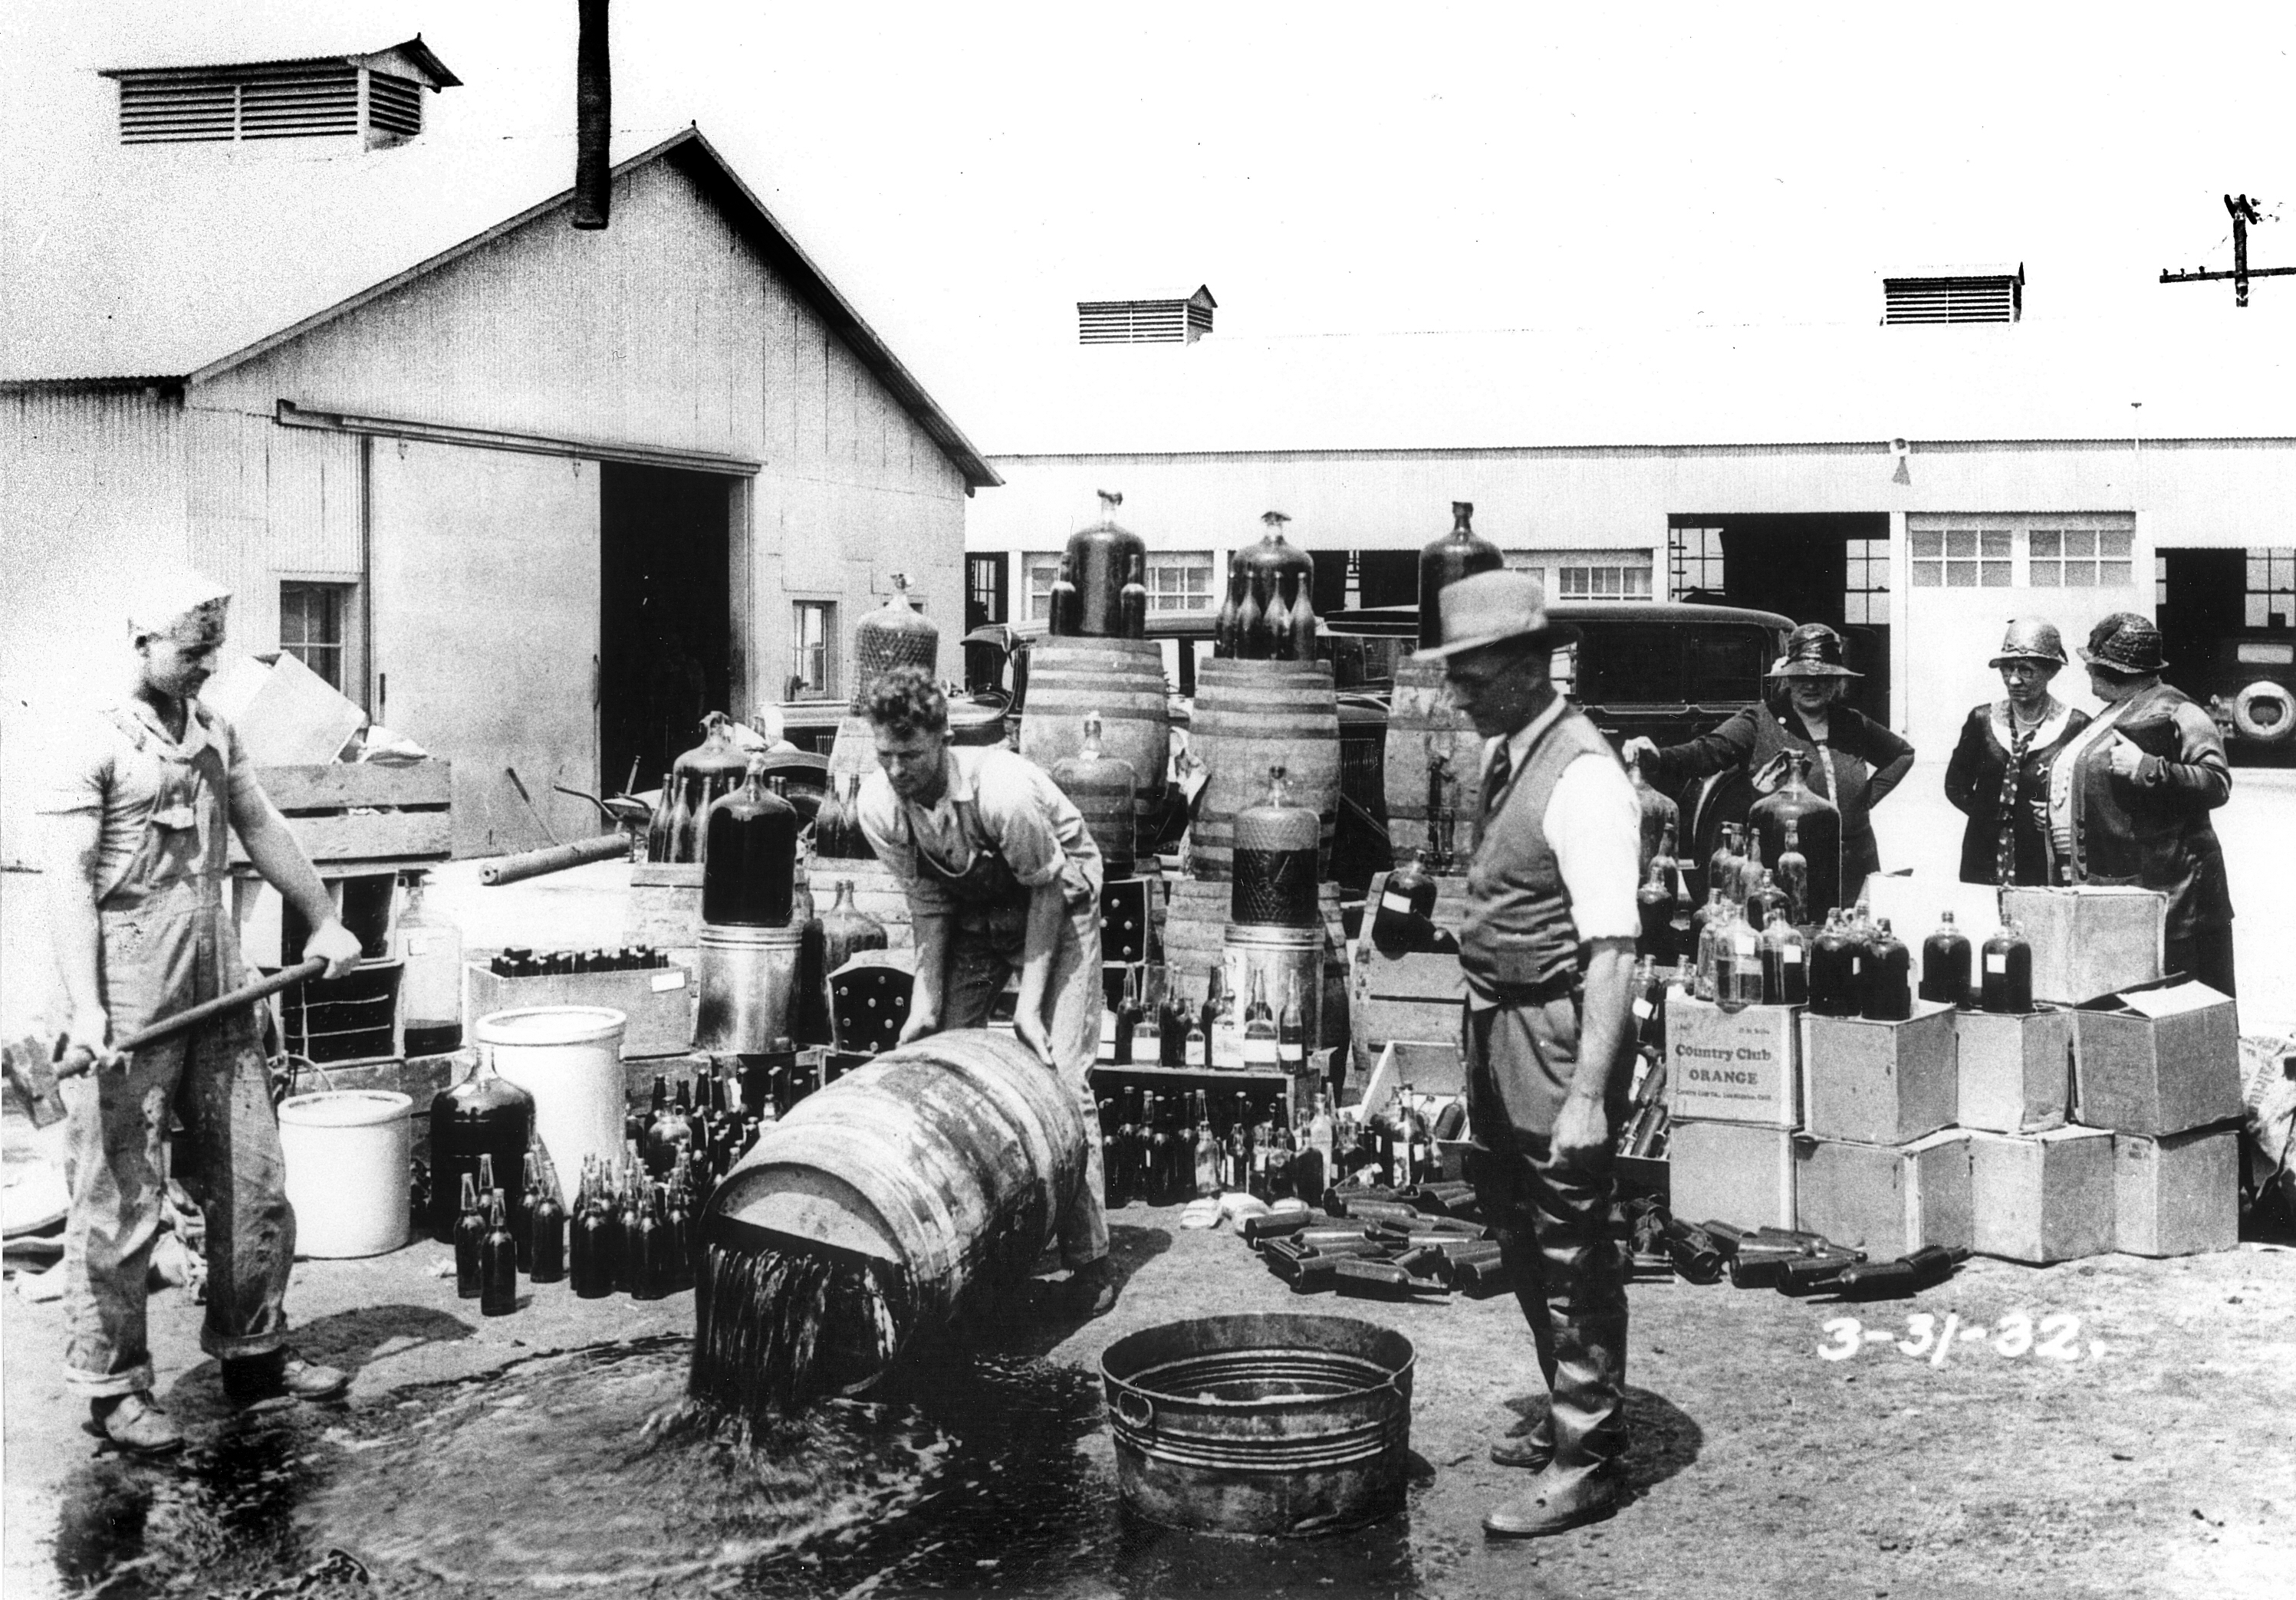 Orange County Sheriff's deputies dump illegal booze in Santa Ana, Calif. in this 1932 photograph. Photo credit: Orange County Archives, CC BY 2.0]